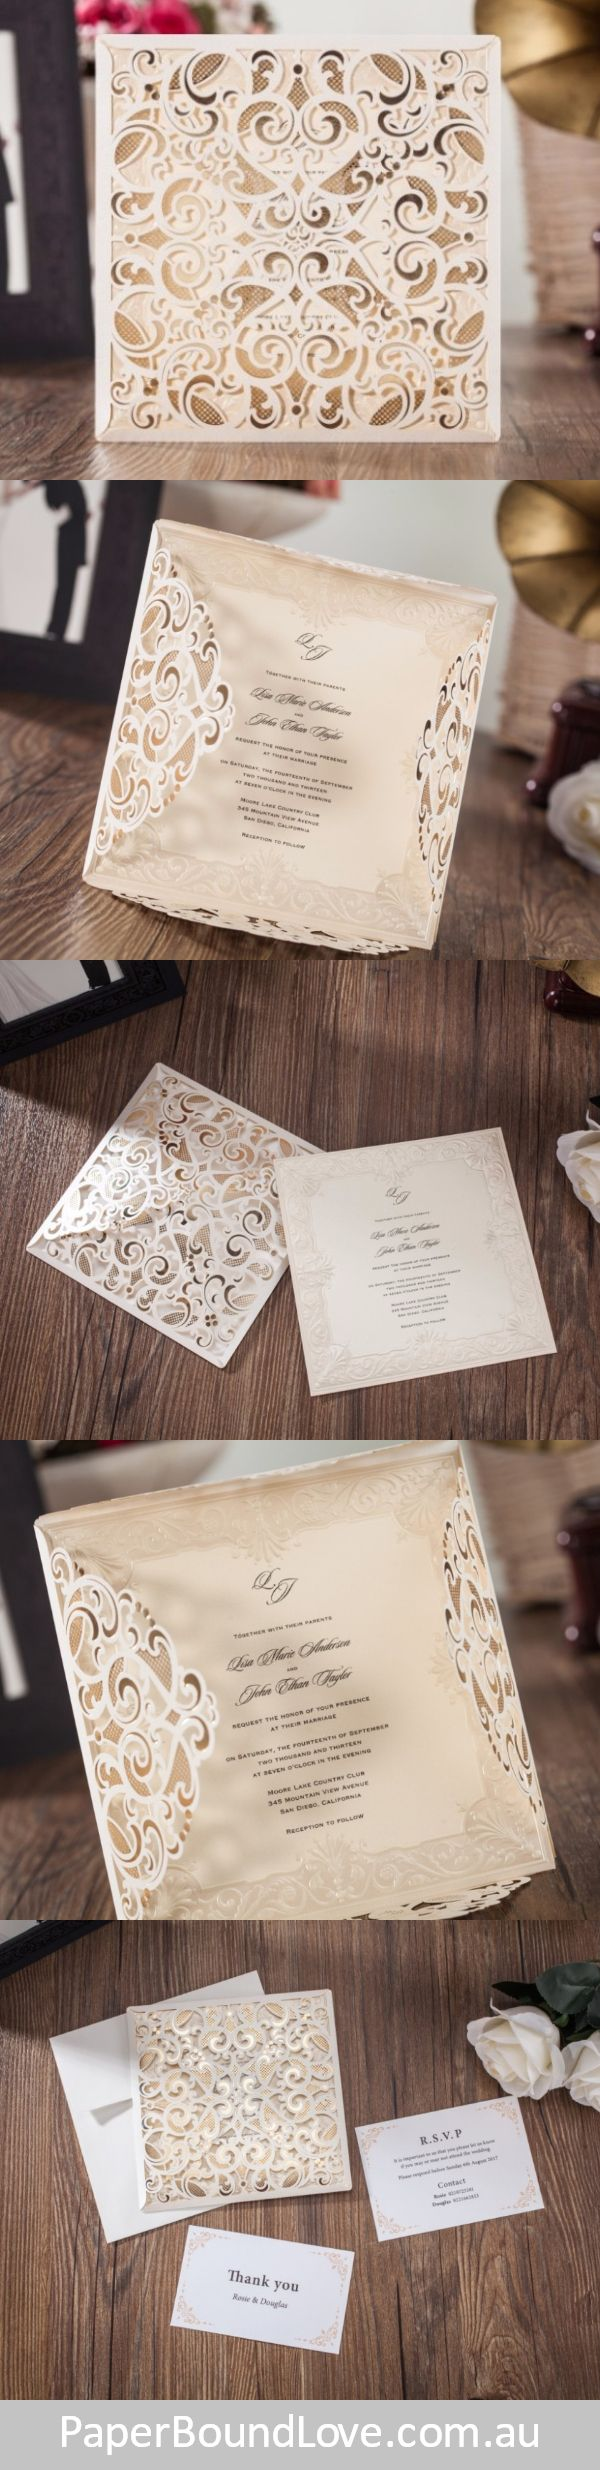 how to write muslim wedding invitation card%0A Regal wedding invitations by Paper Bound Love